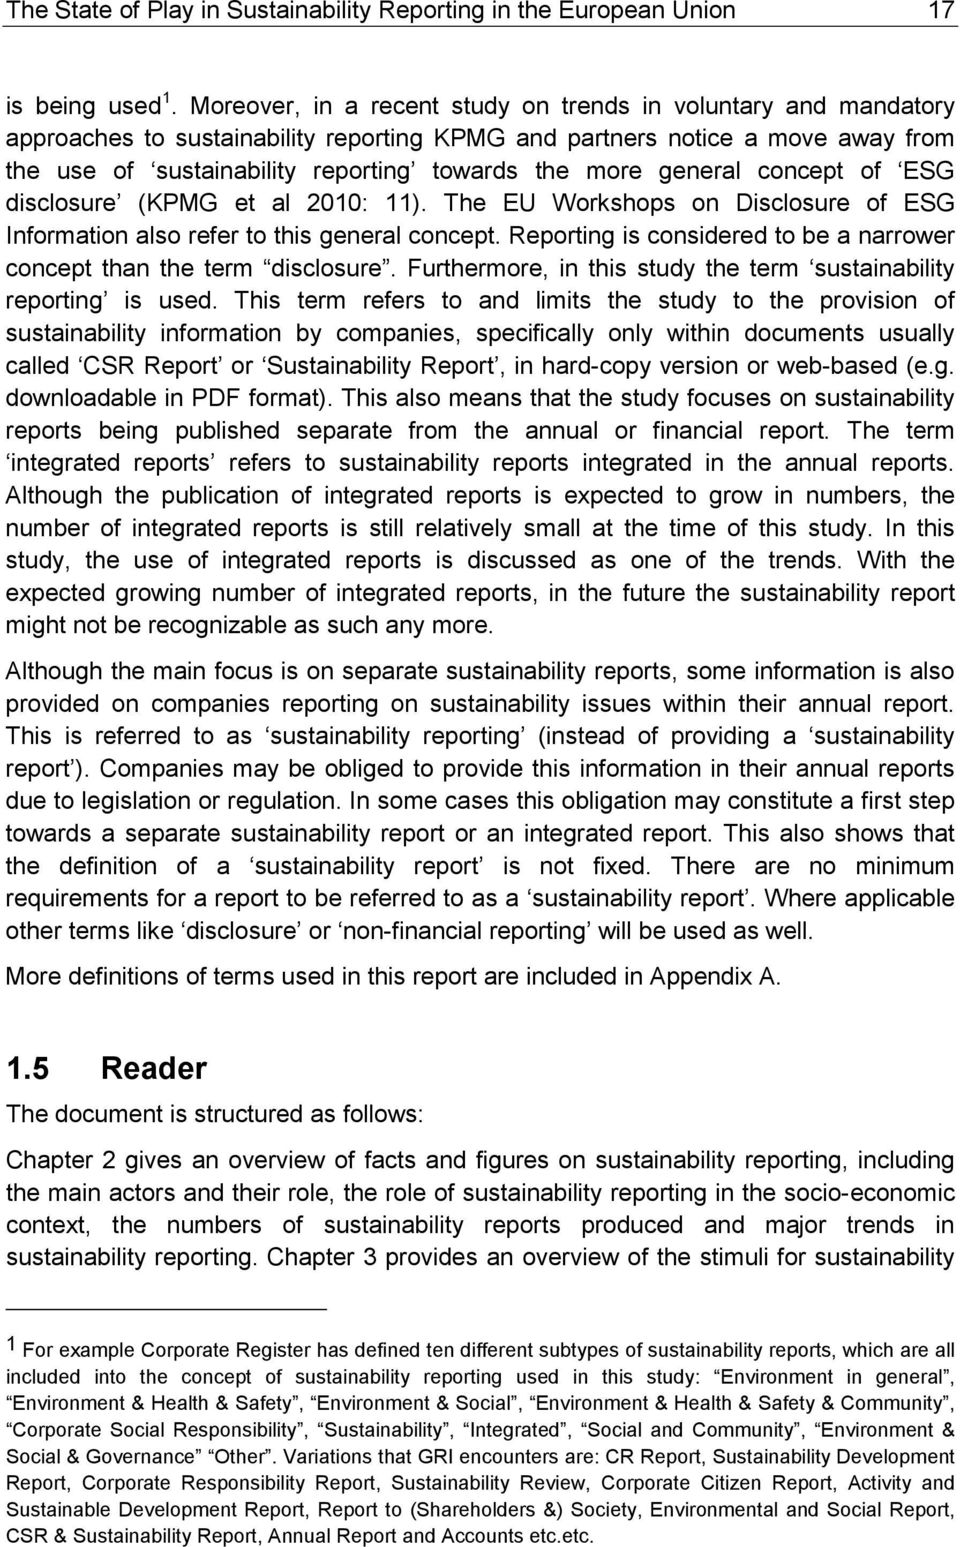 general concept of ESG disclosure (KPMG et al 2010: 11). The EU Workshops on Disclosure of ESG Information also refer to this general concept.